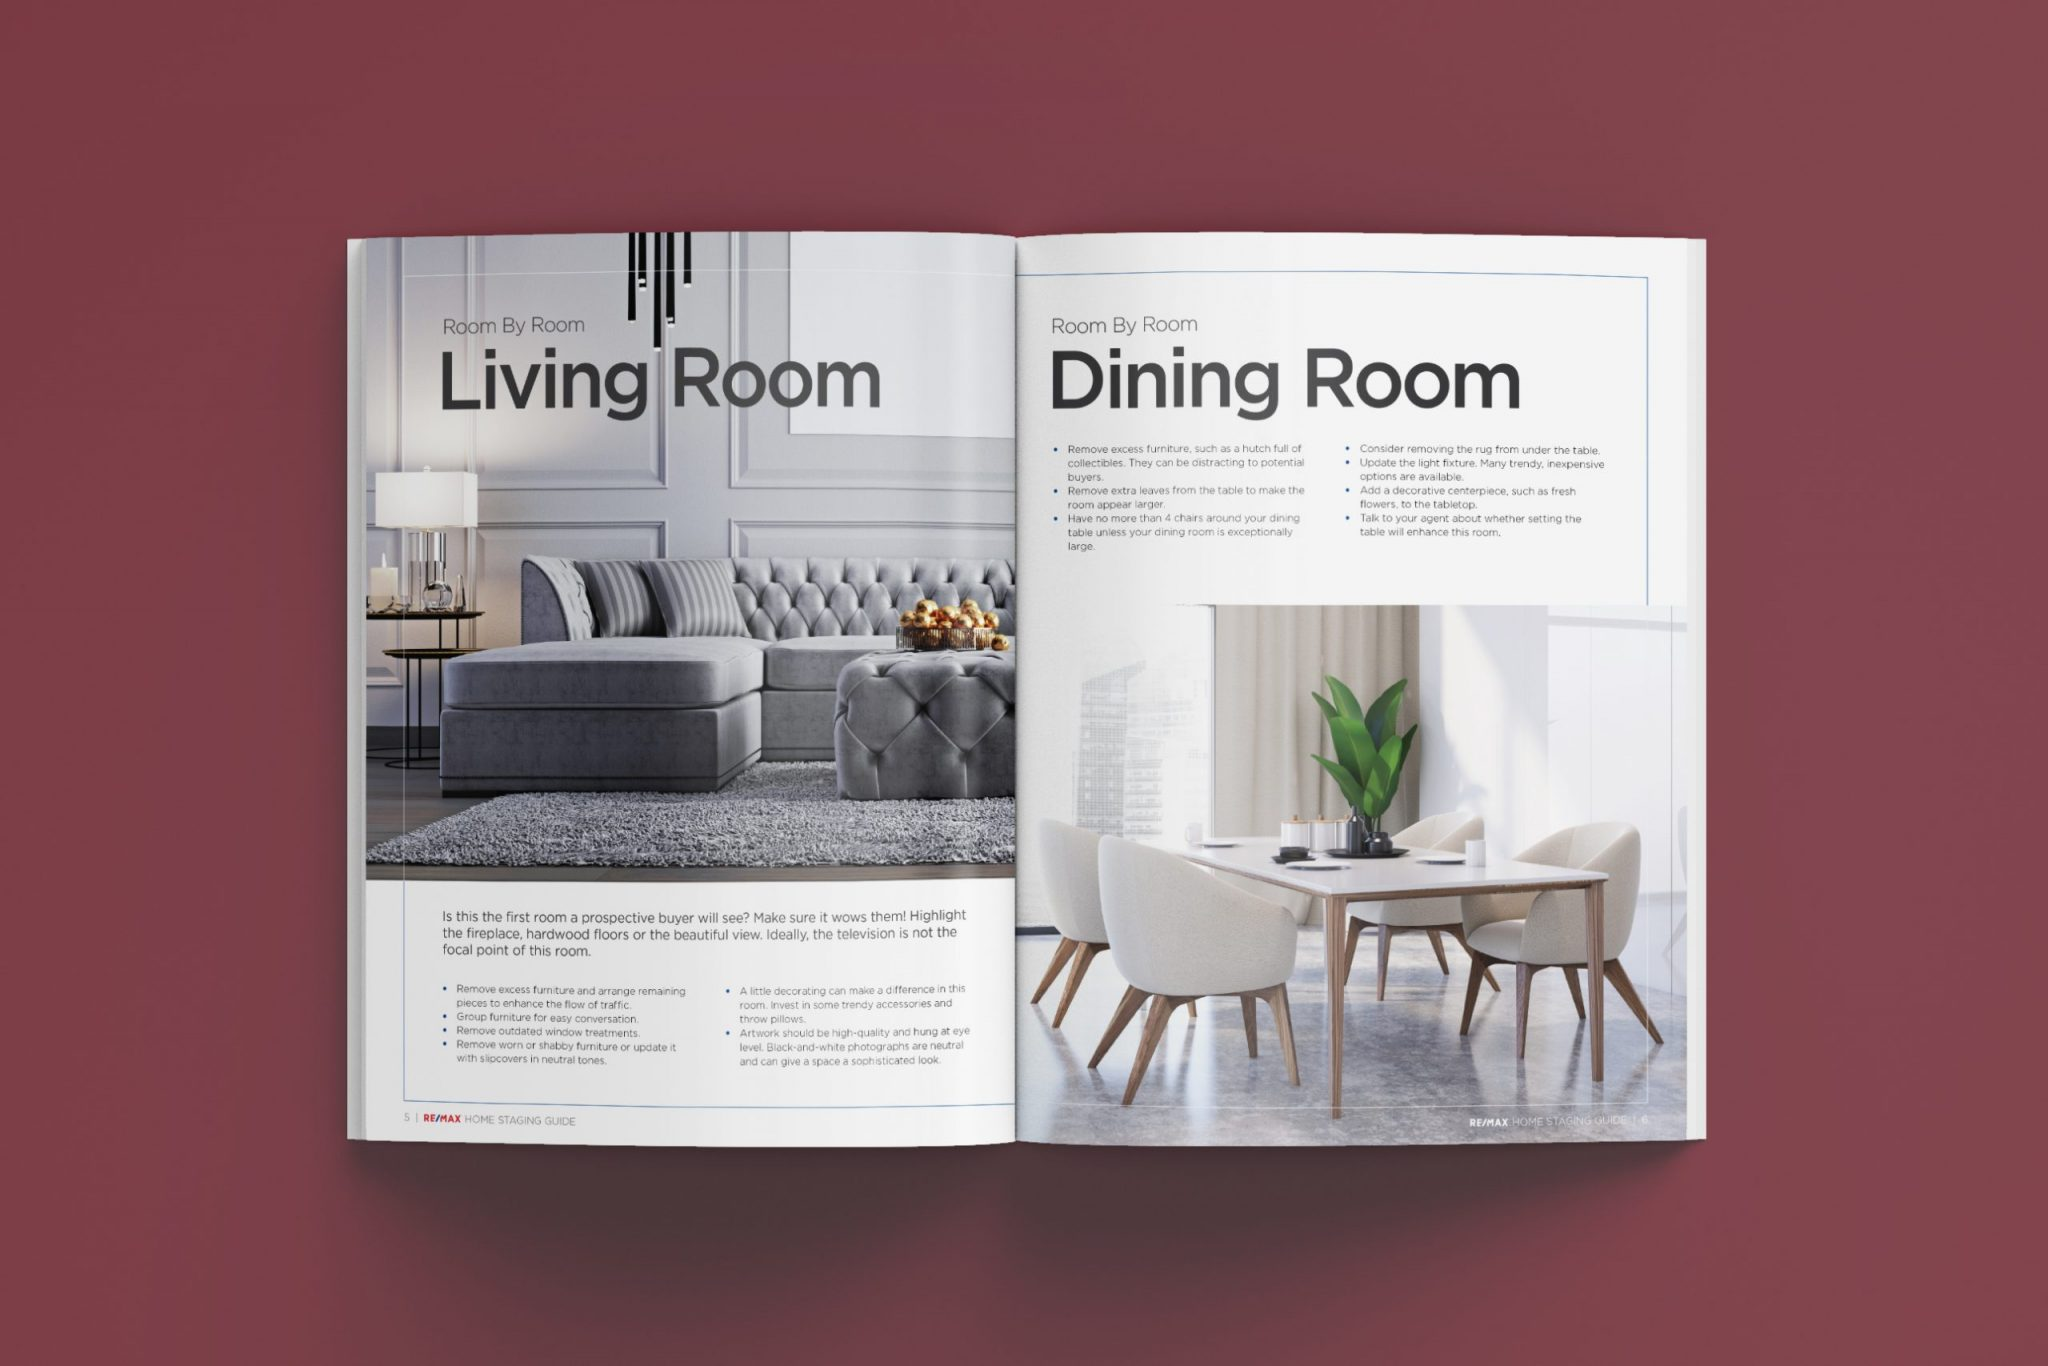 staging-guide-spread-2